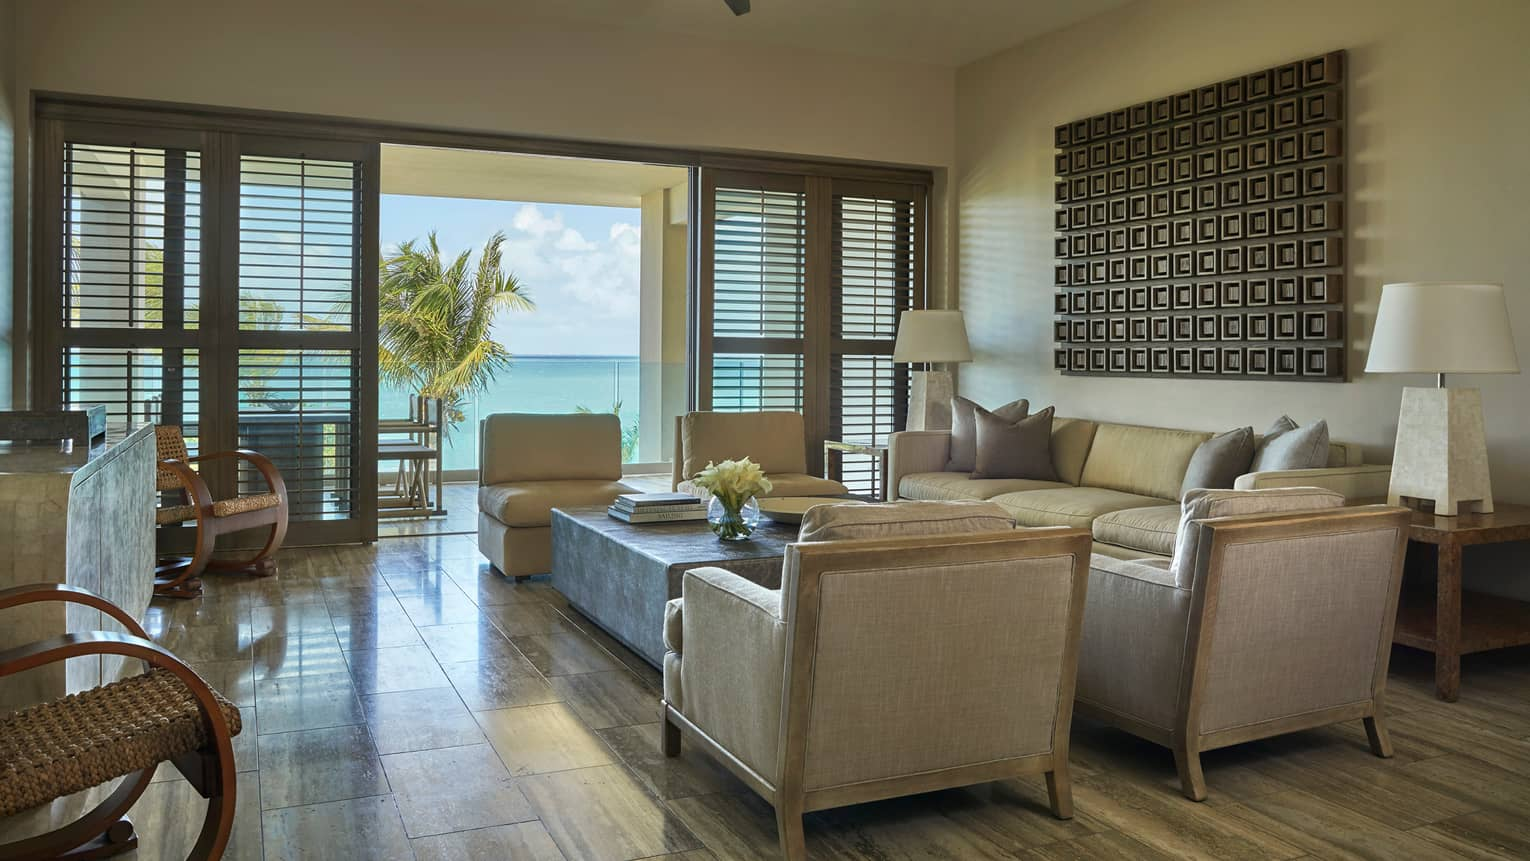 Three-Bedroom Ocean-View Residence back of armchair, seating area with sofa, coffee table, open patio shutters to sunny deck